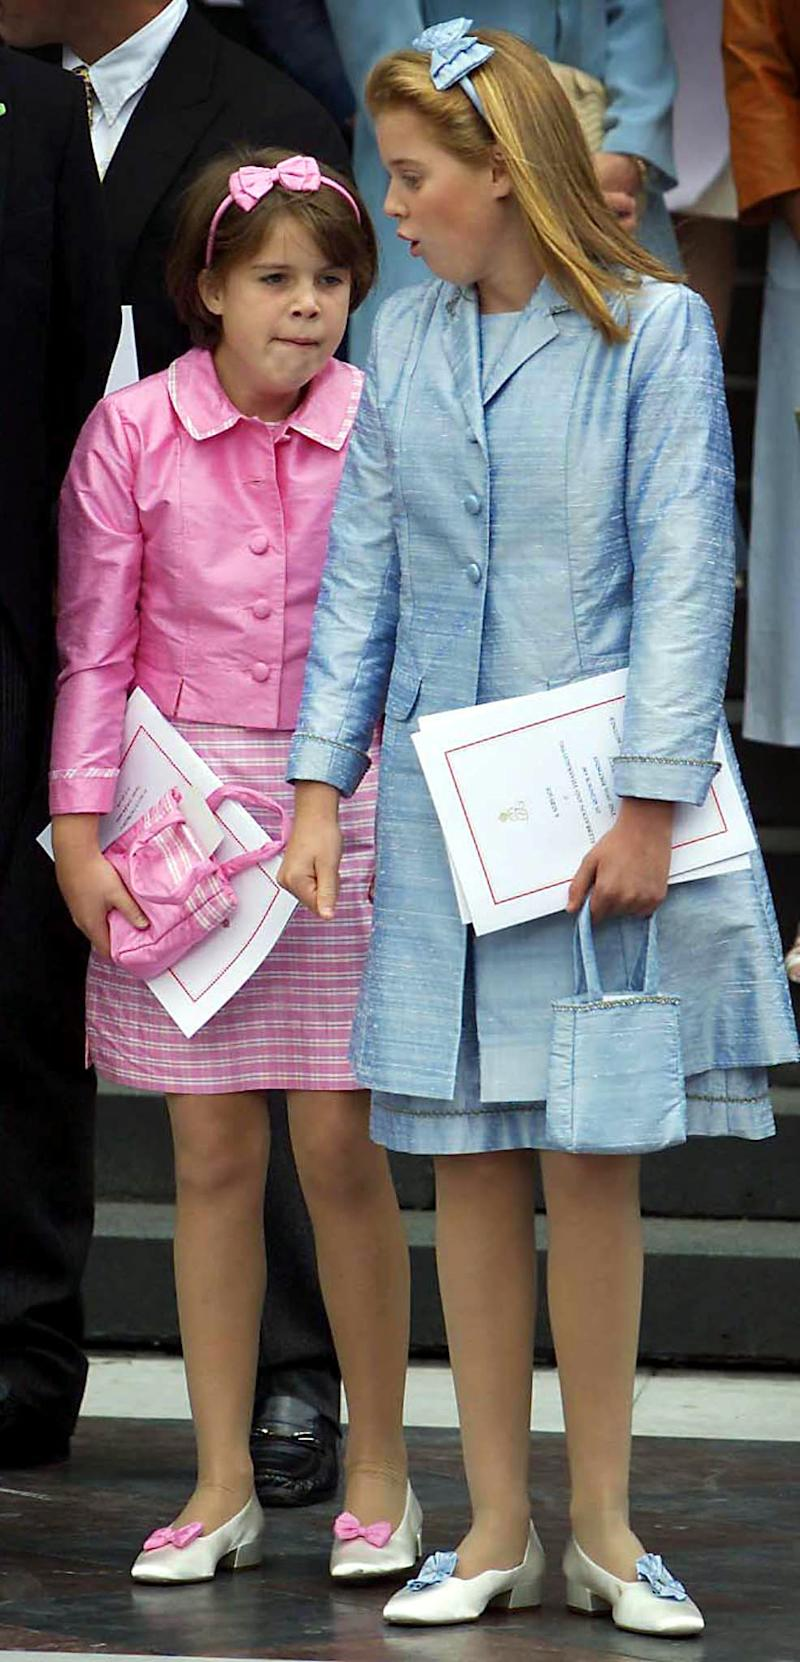 File photo dated 11/07/00 of Princesses Eugenie (left) and Beatrice waiting for their car on the steps of St Paul's Cathedral following the service of Thanksgiving. The youngest daughter of the Duke of York and Sarah, Duchess of York, is turning 30 on Monday.